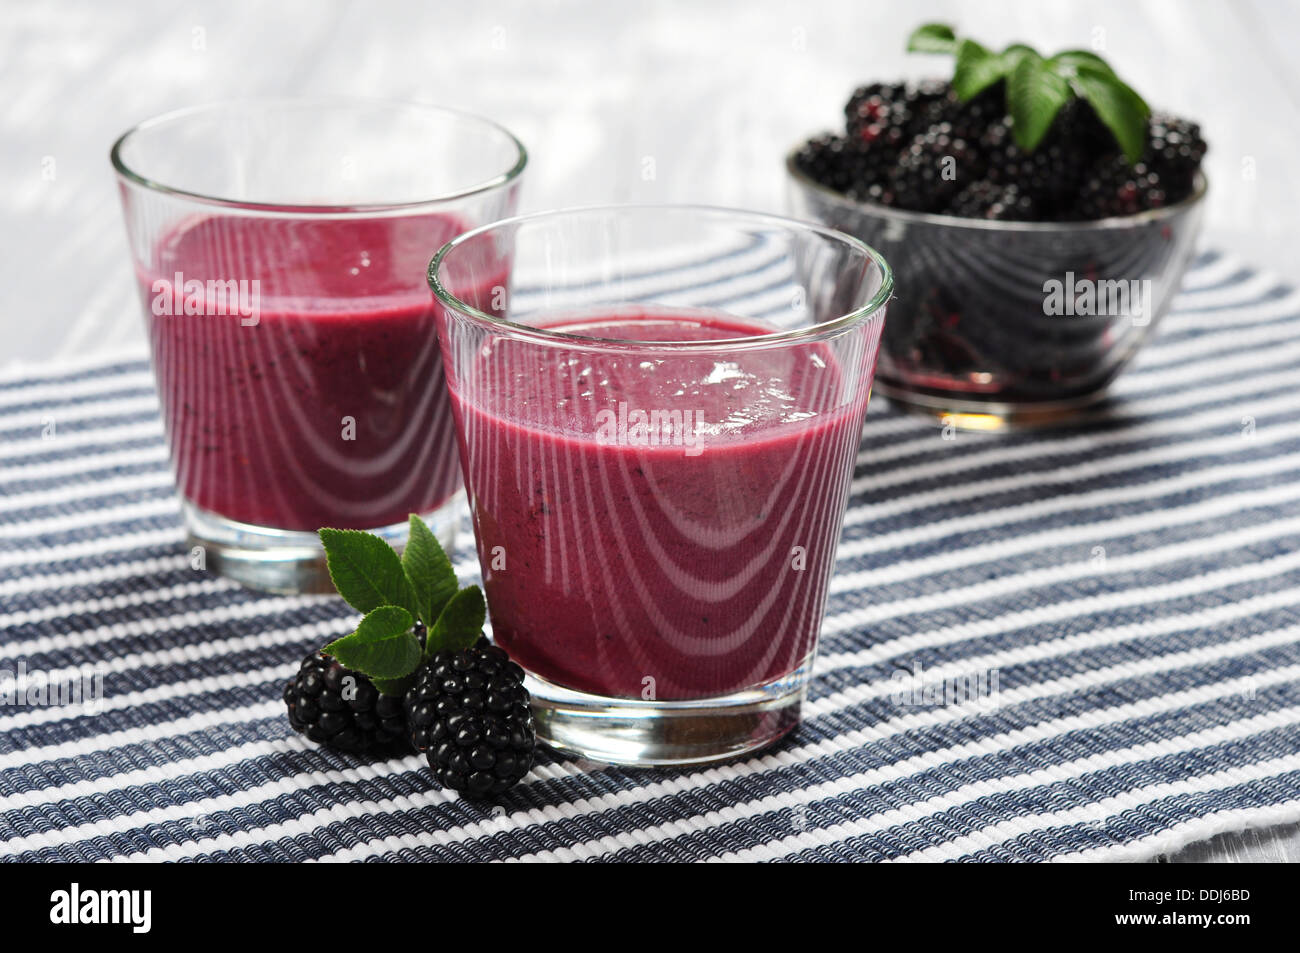 Blackberry smoothie with fresh blackberries on wooden background - Stock Image